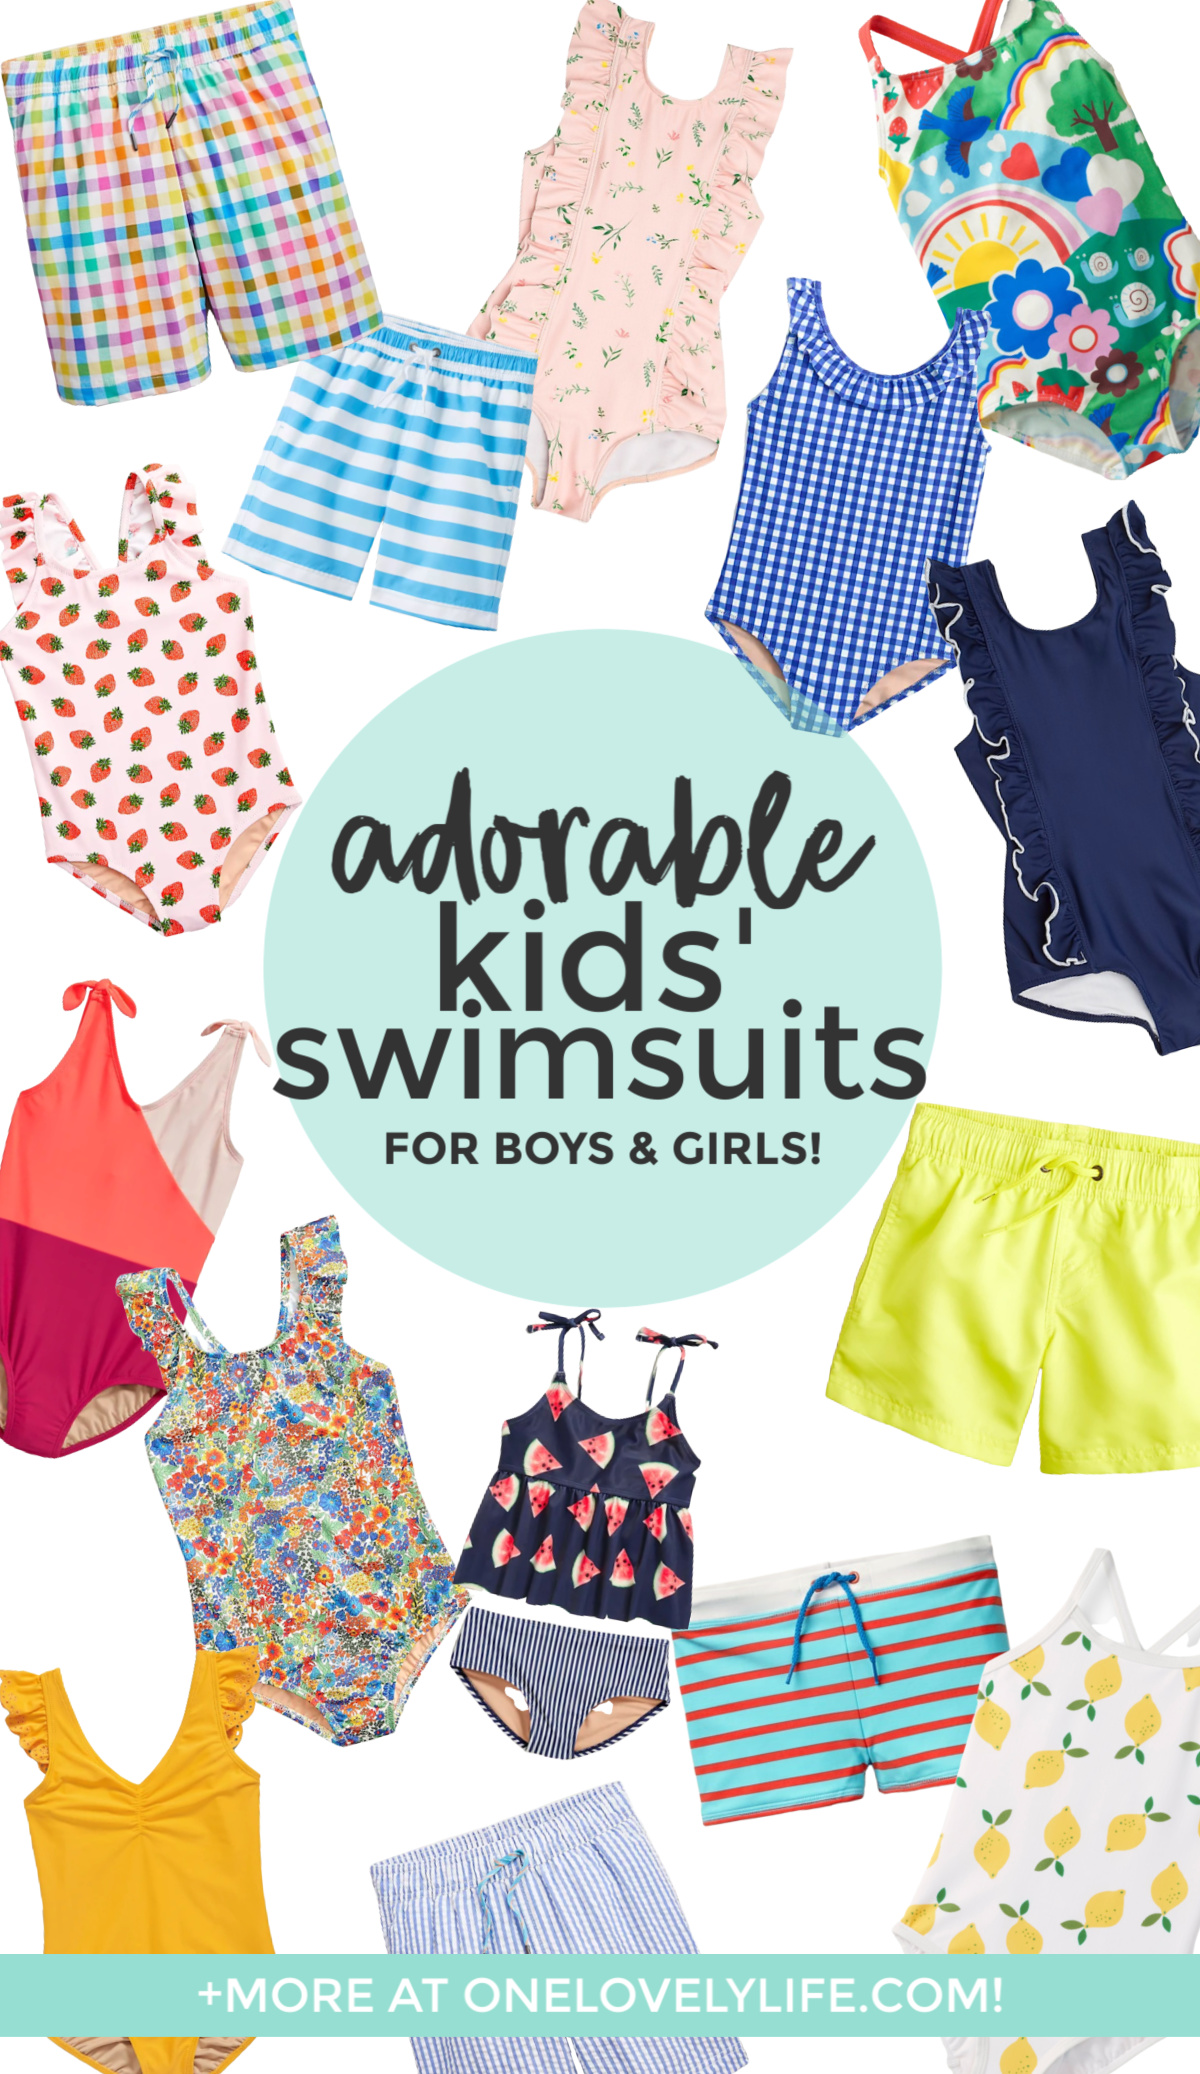 Kids swimsuits curated by One Lovely Life